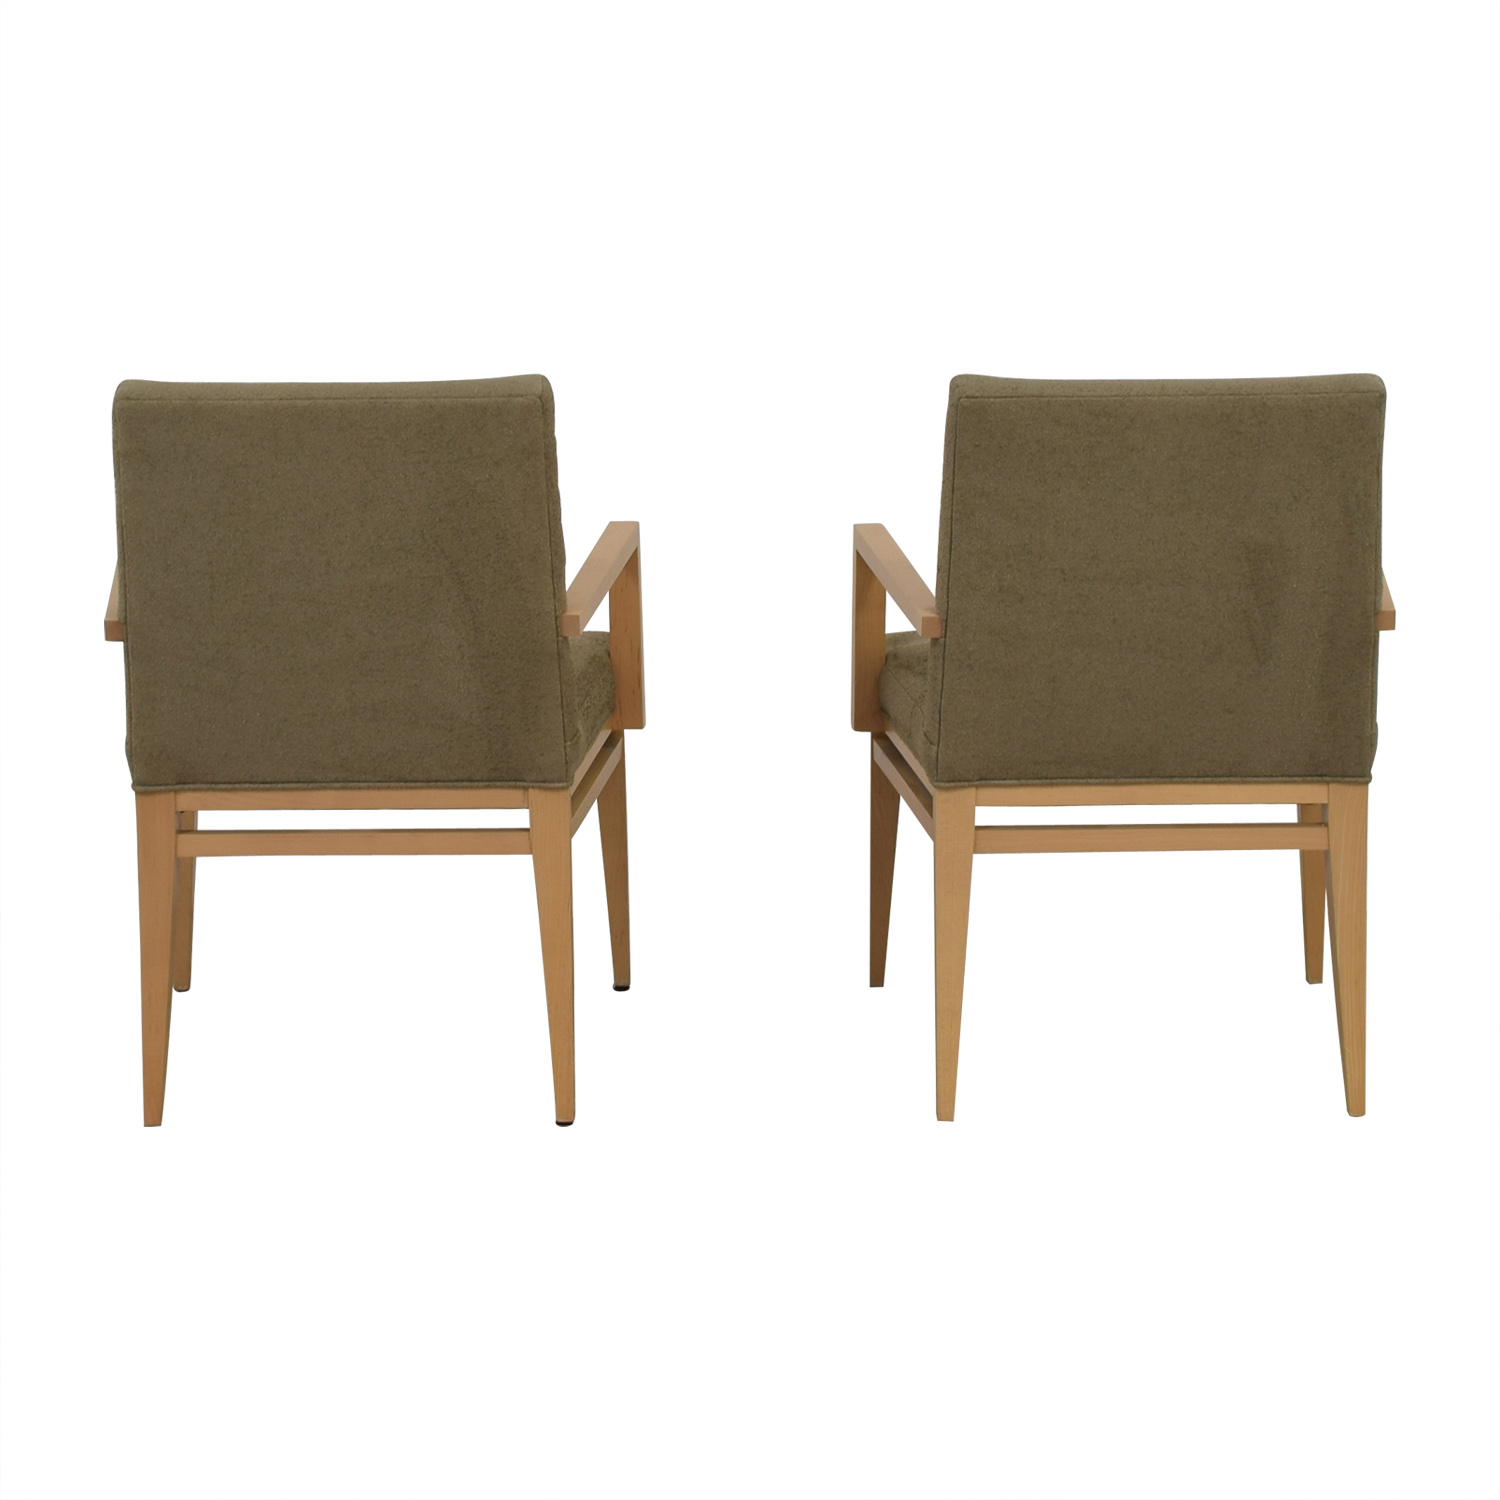 HBF HBF Newport Wood and Fabric Arm Chairs dimensions